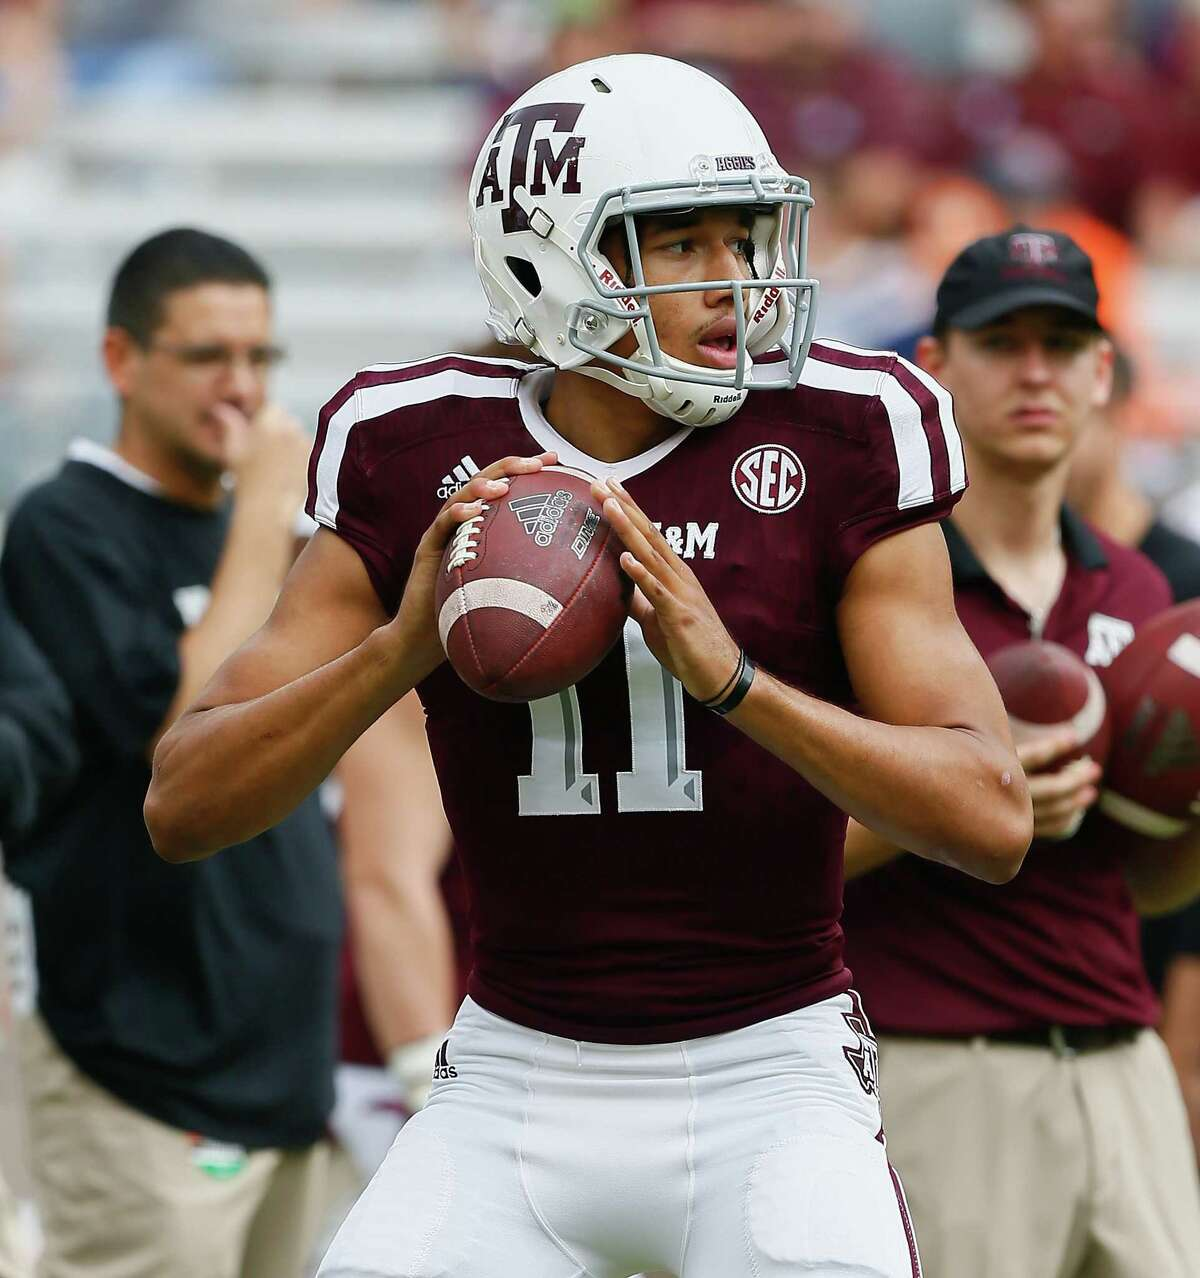 COLLEGE STATION, TX - NOVEMBER 04: Kellen Mond #11 of the Texas A&M Aggies warms up before their game against the Auburn Tigers at Kyle Field on November 4, 2017 in College Station, Texas.